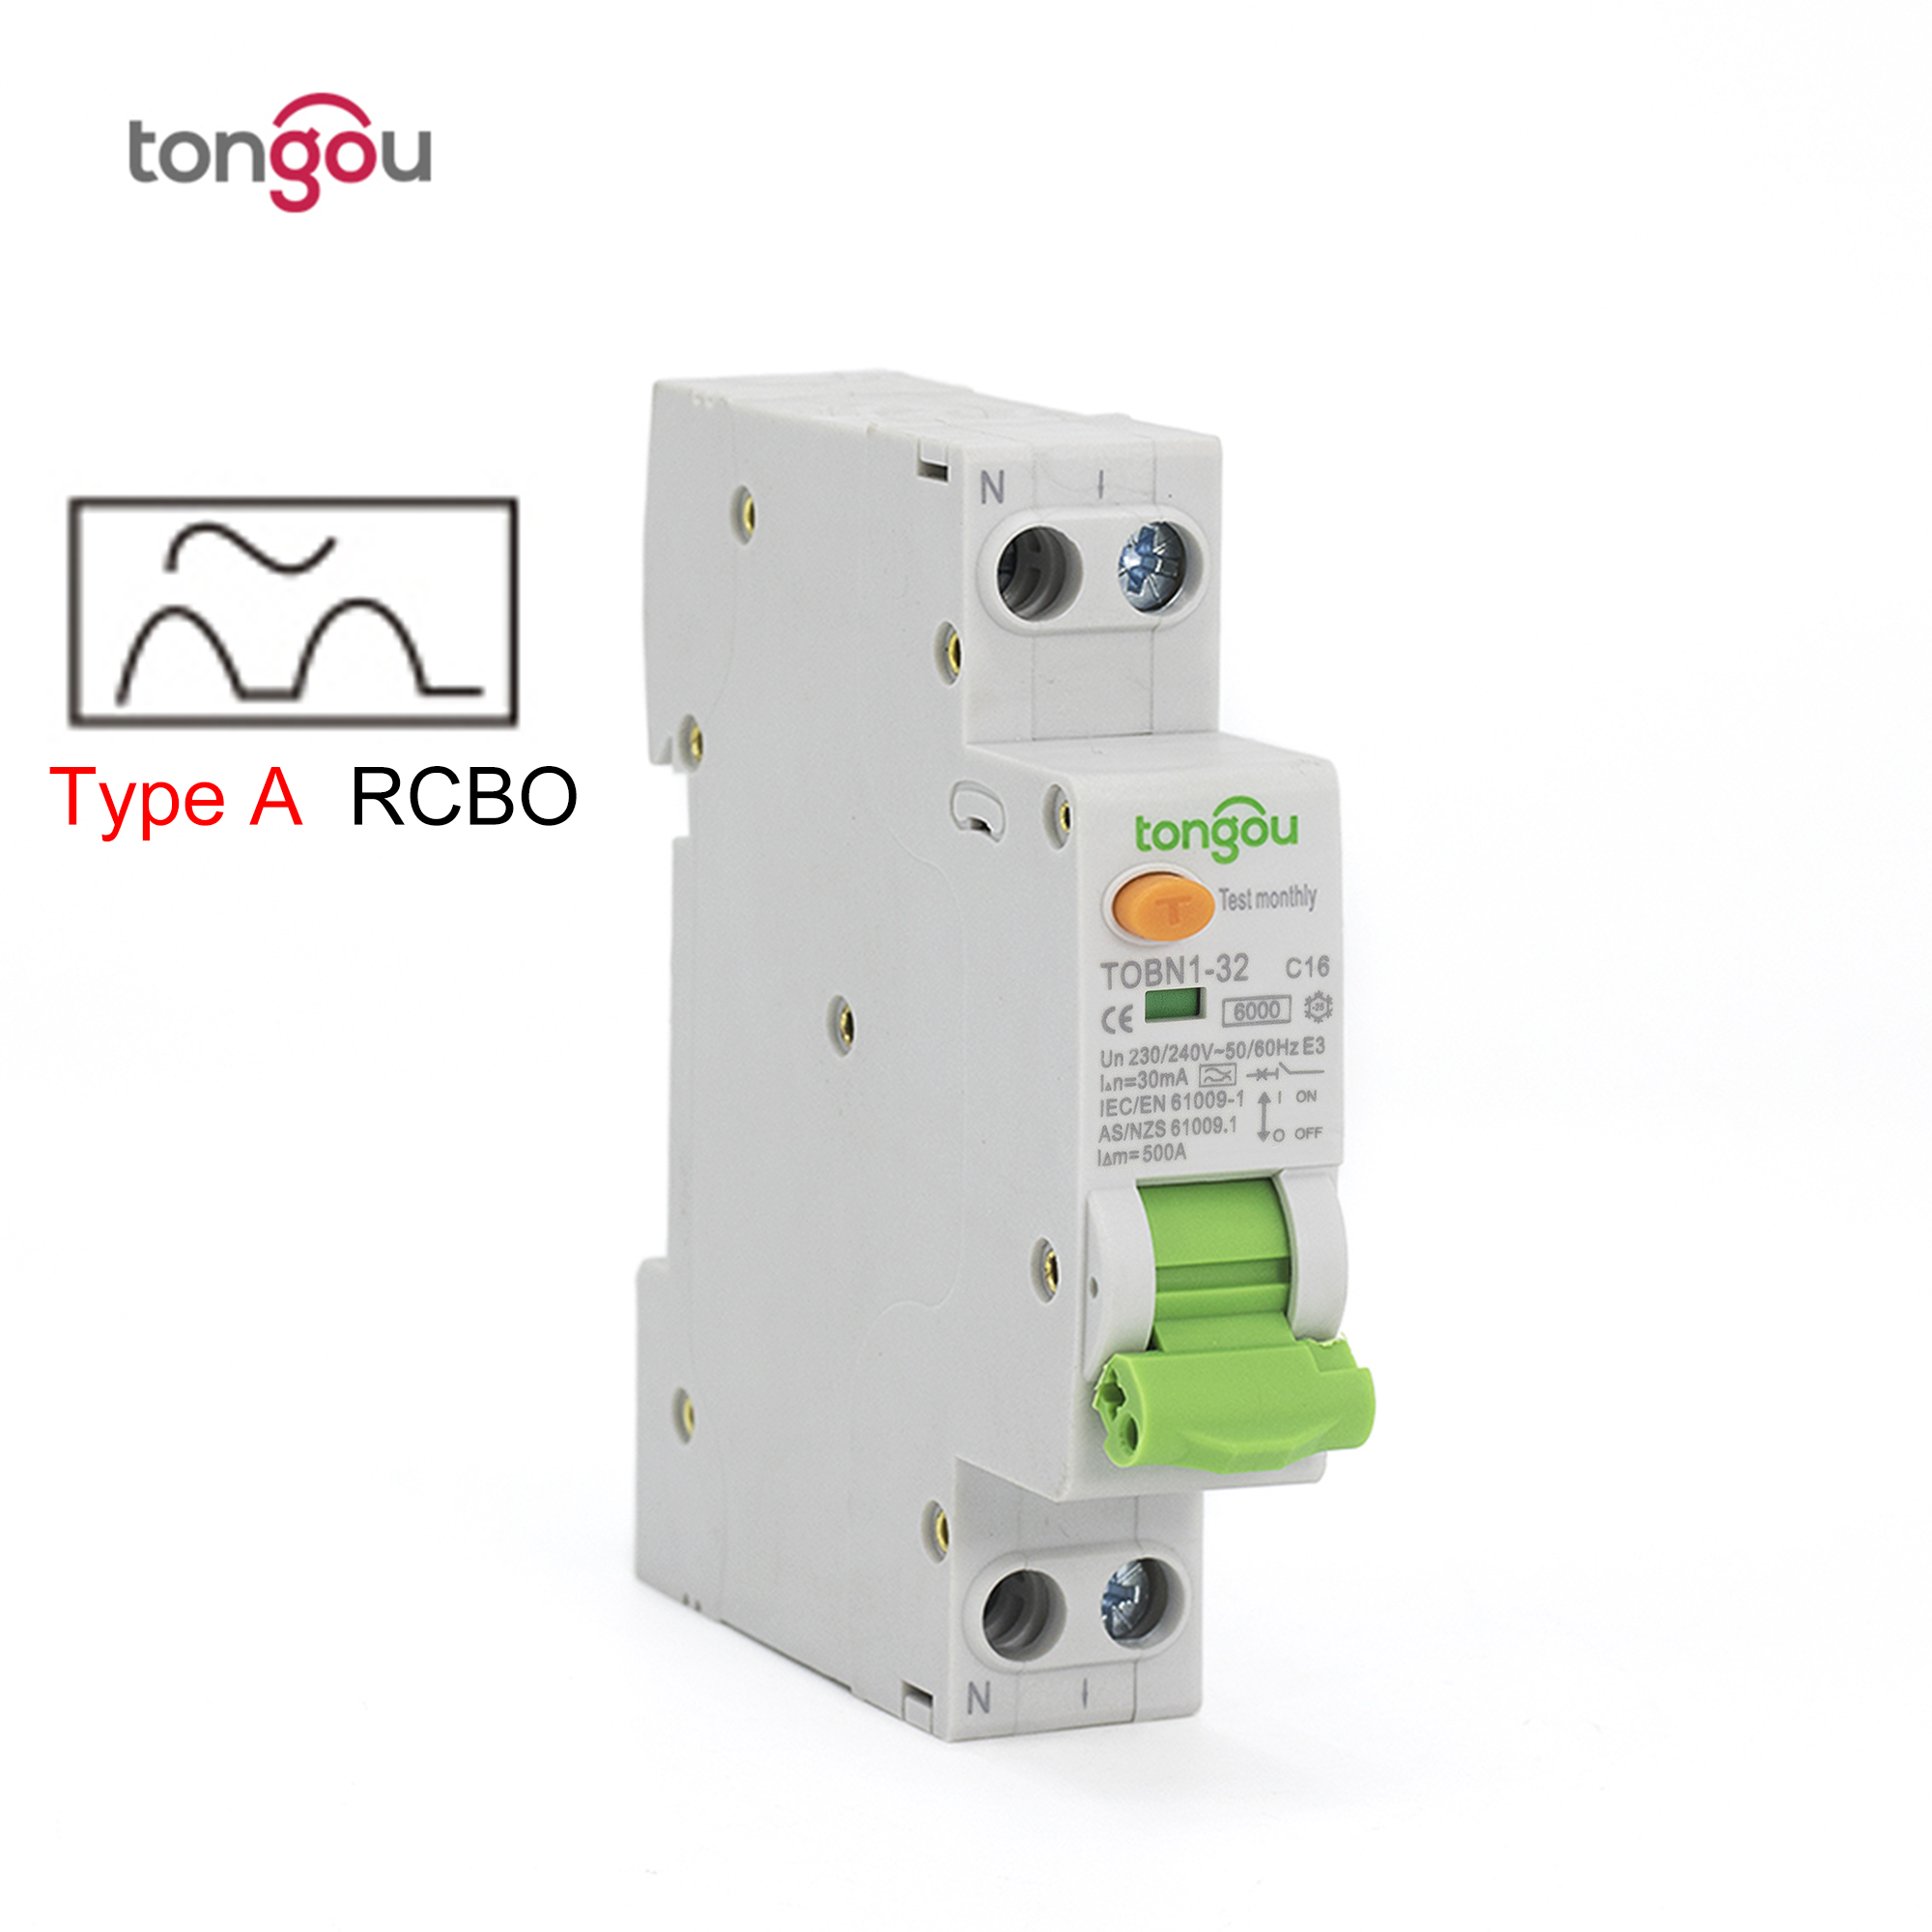 Type A RCBO 6KA 18mm 6A 10A 20A 25A 32A 30mA 1P+N Residual Current Circuit Breaker with Over Current and Leakage Protection